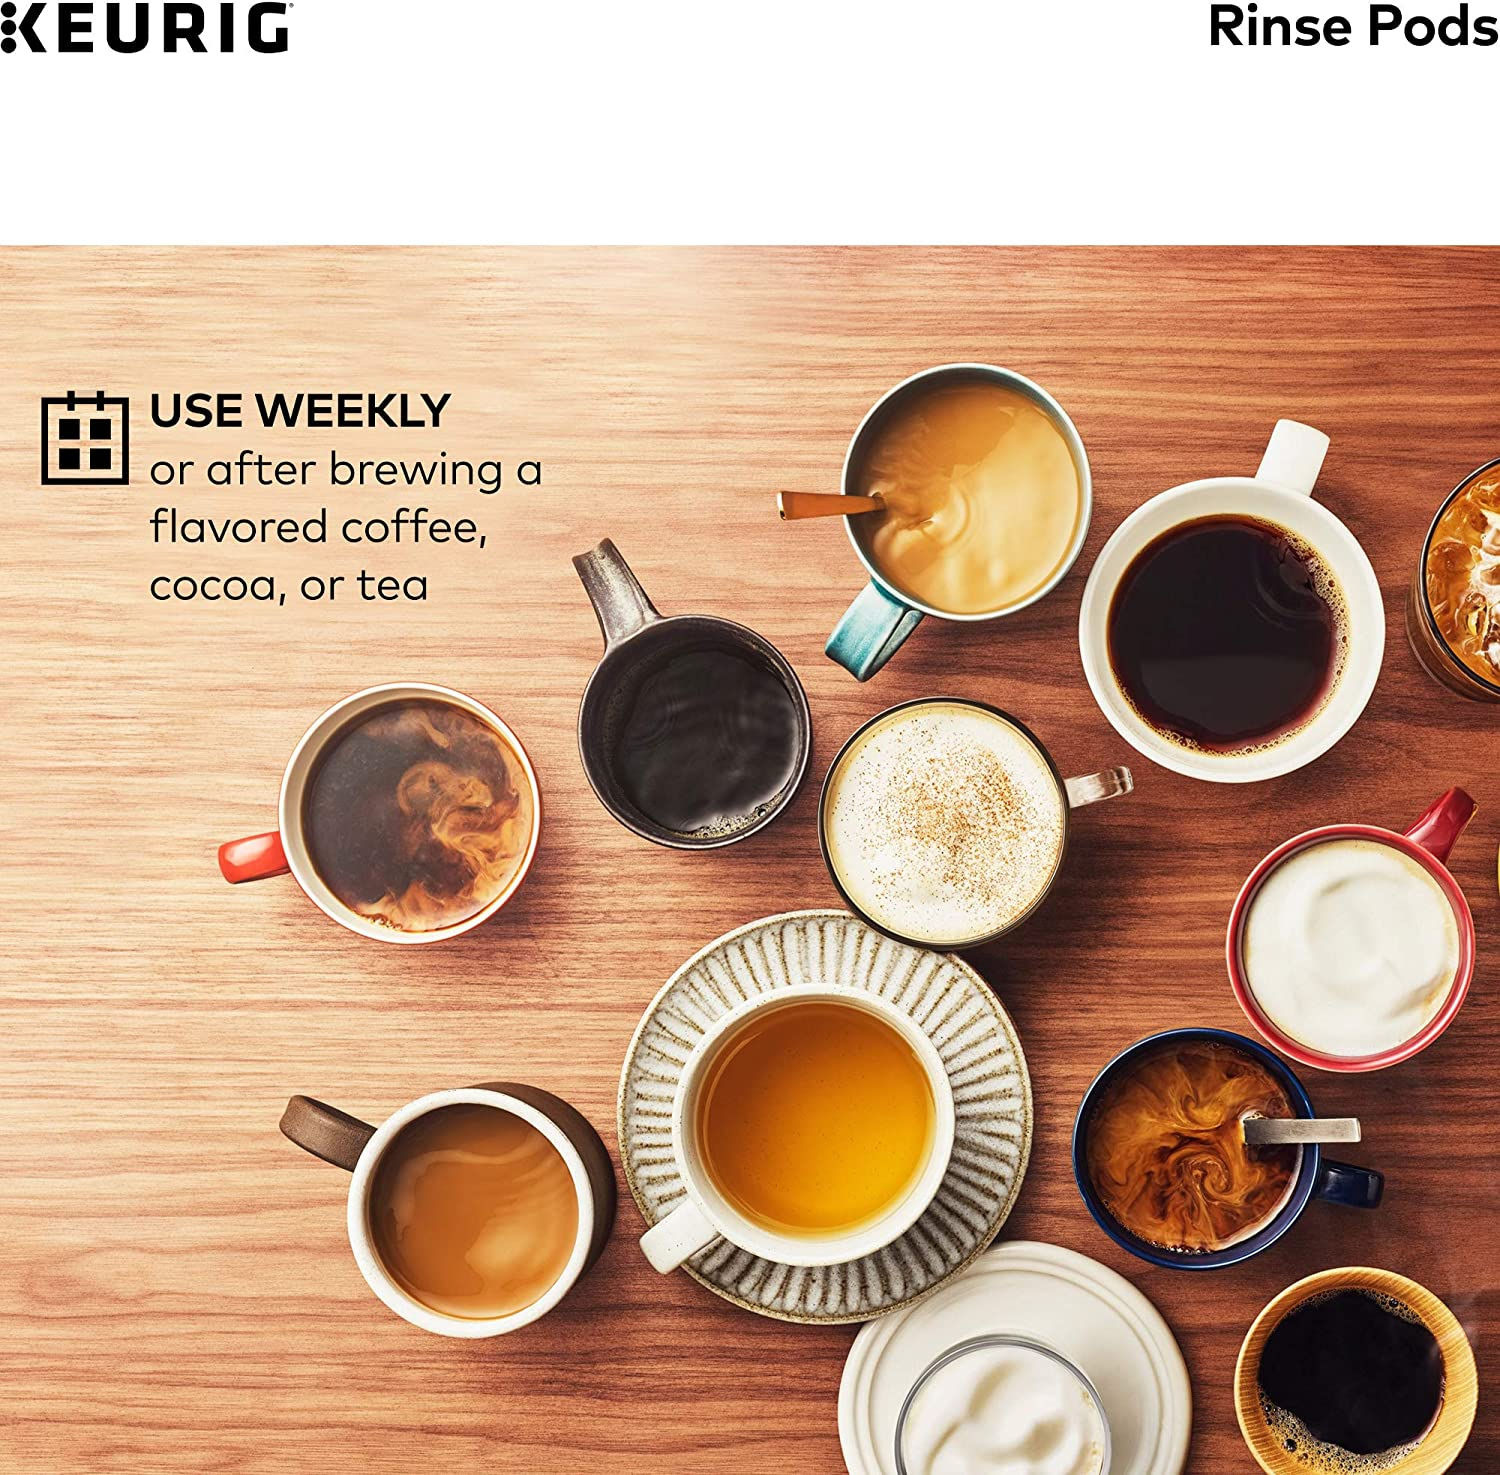 Keurig Pods Reduces Flavor Carry Over, Compatible Classic/1.0 & 2.0 K-Cup Coffee Makers